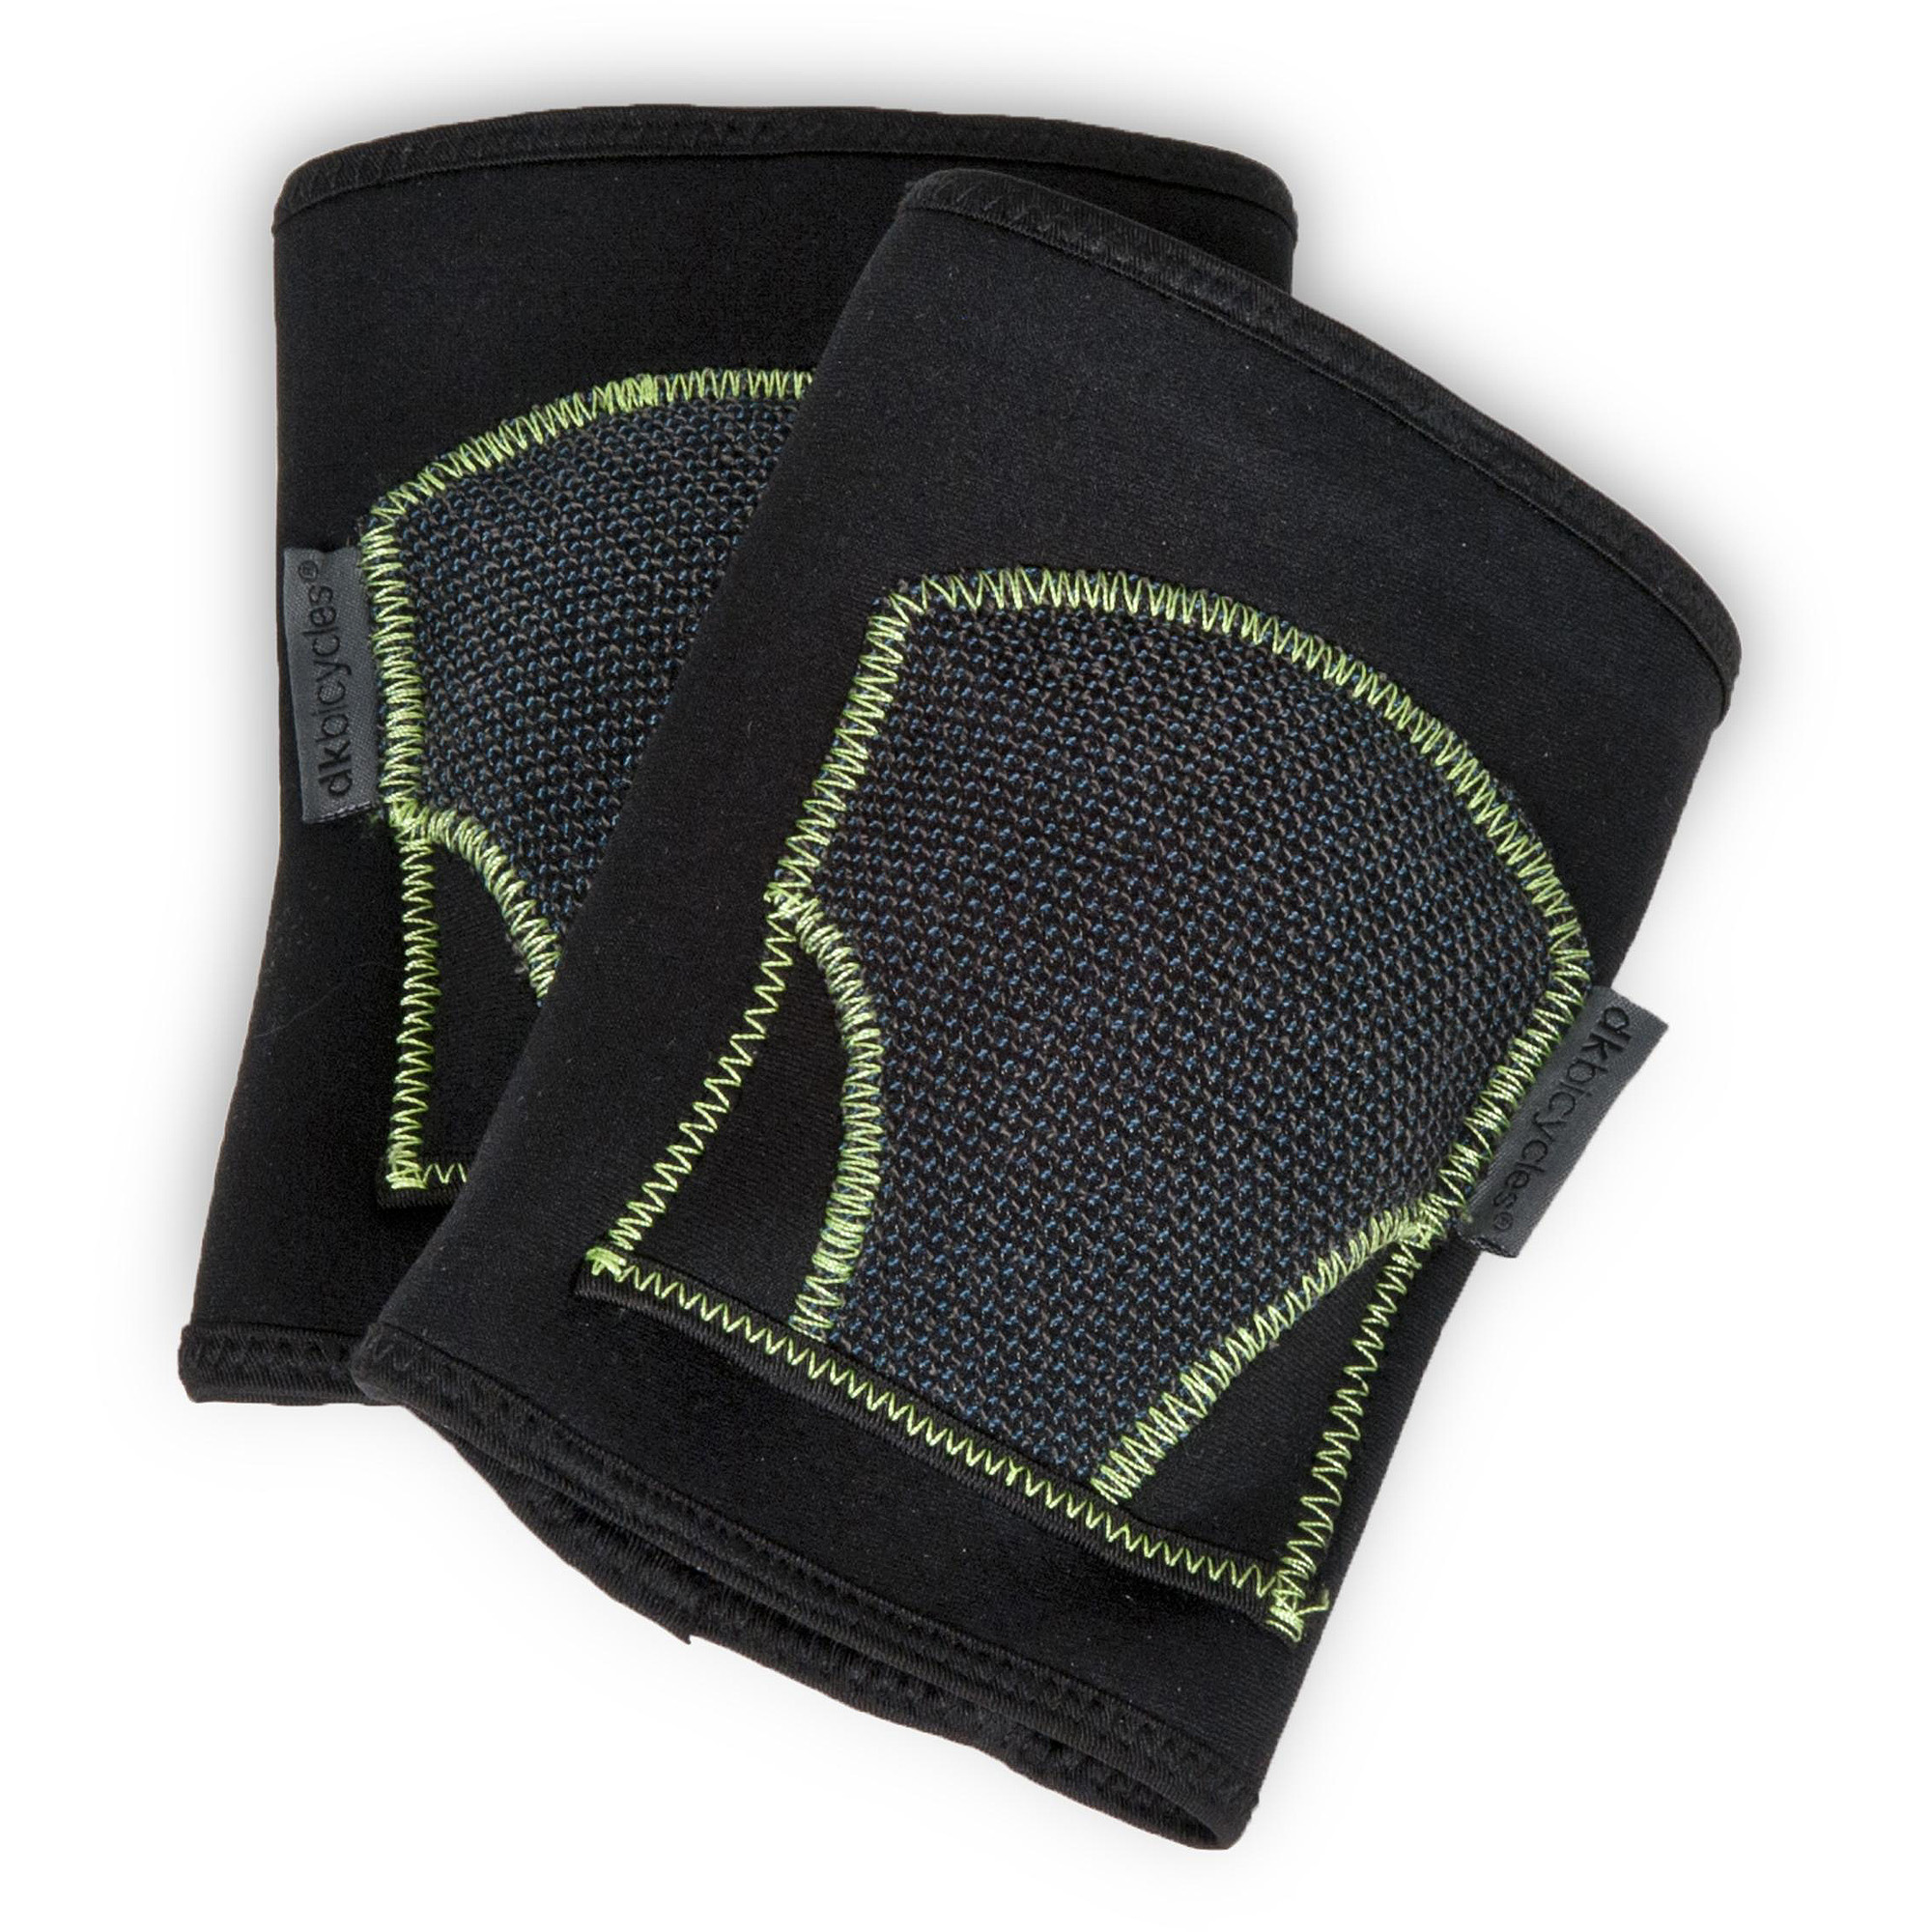 DK Knee and Elbow Pads Set, Youth, Black by DK